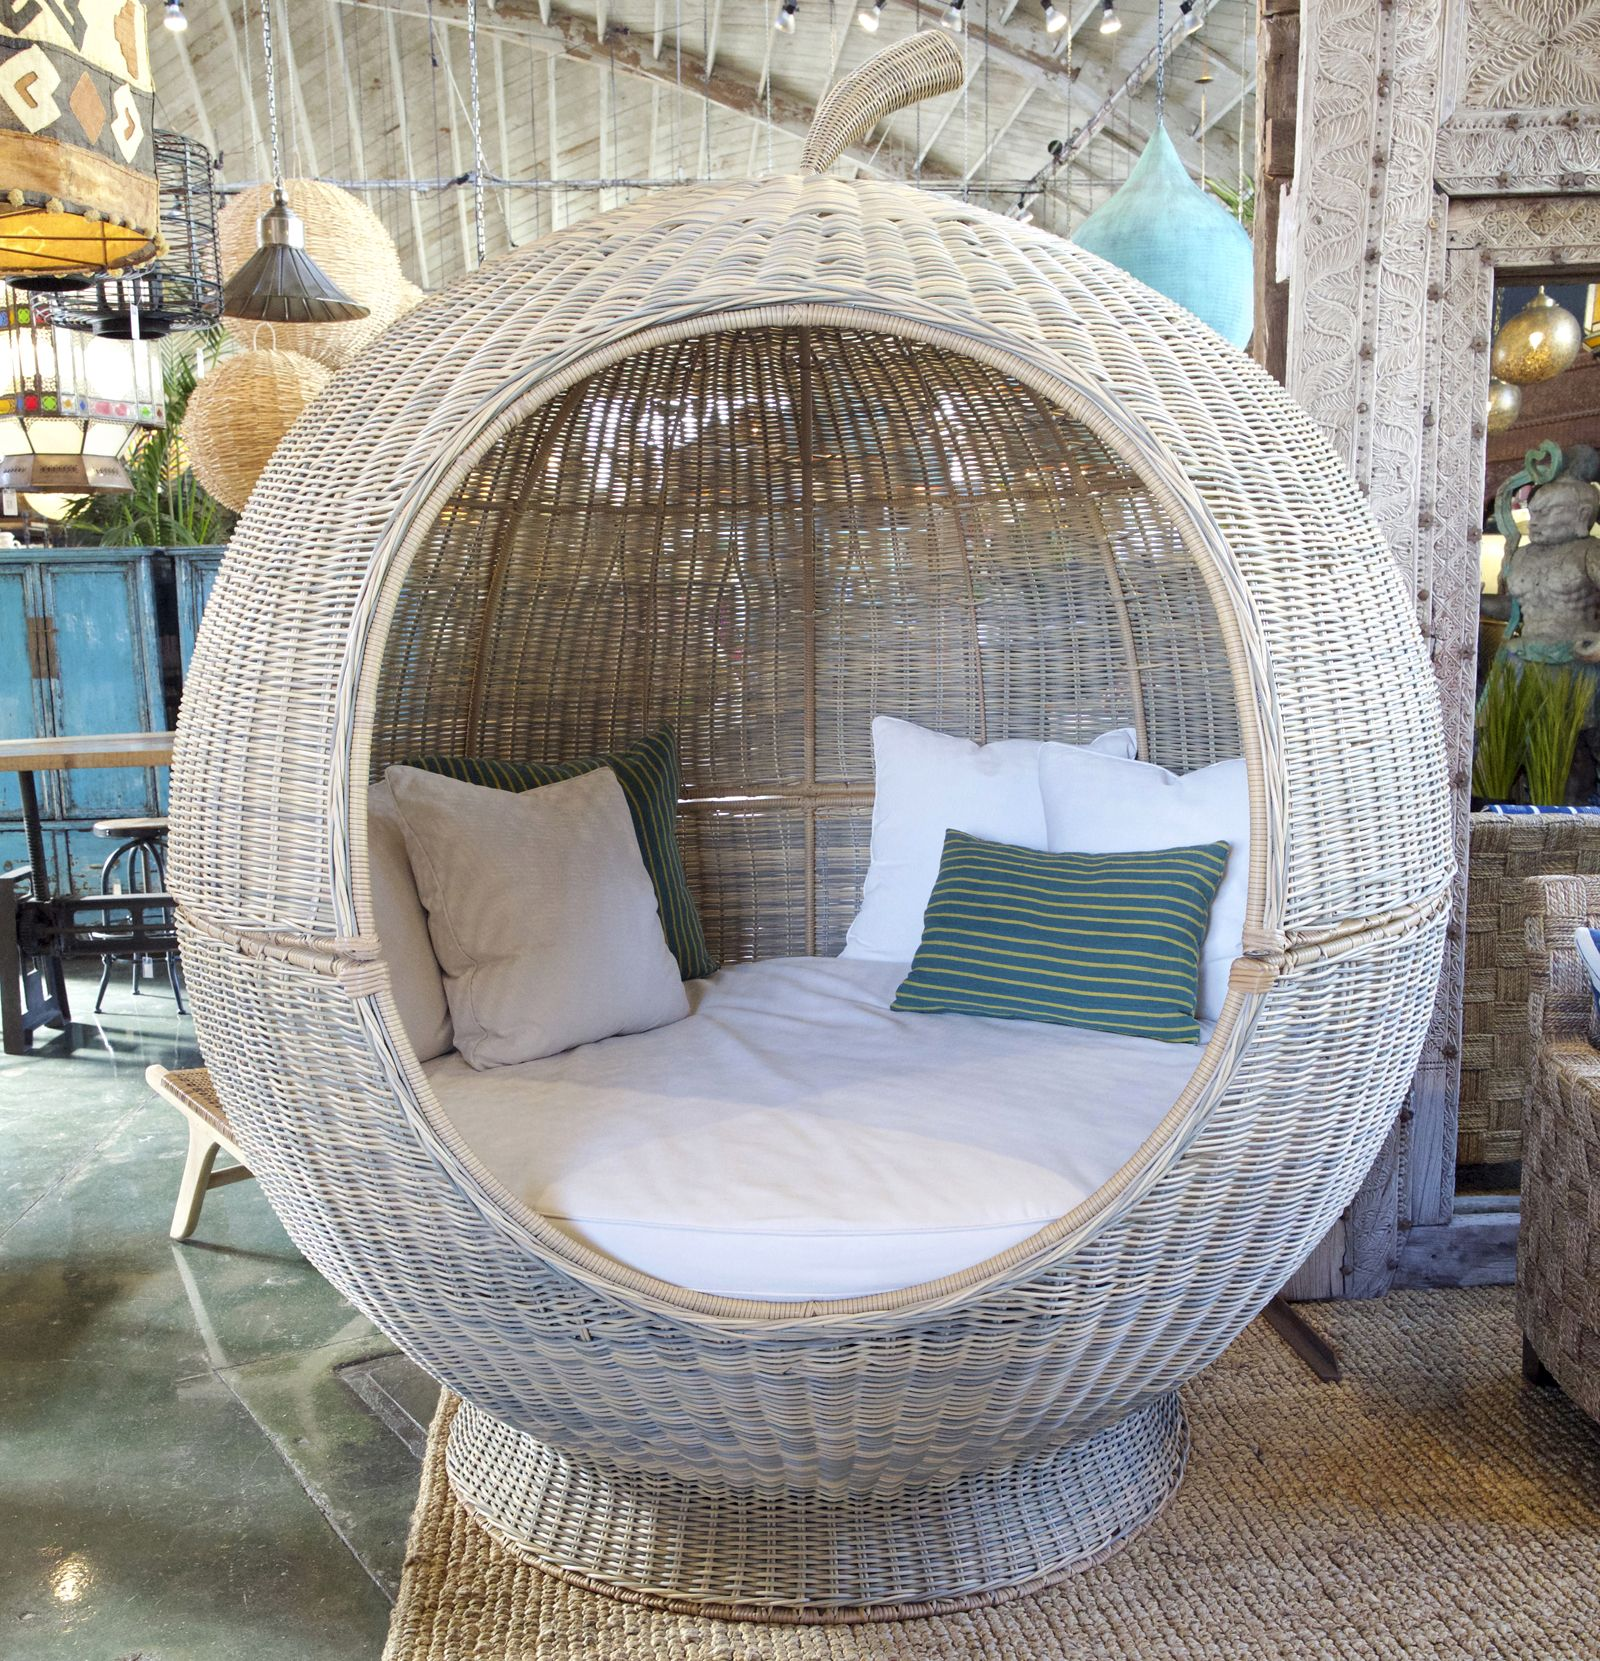 Giant apple shaped pod bed made from durable outdoor